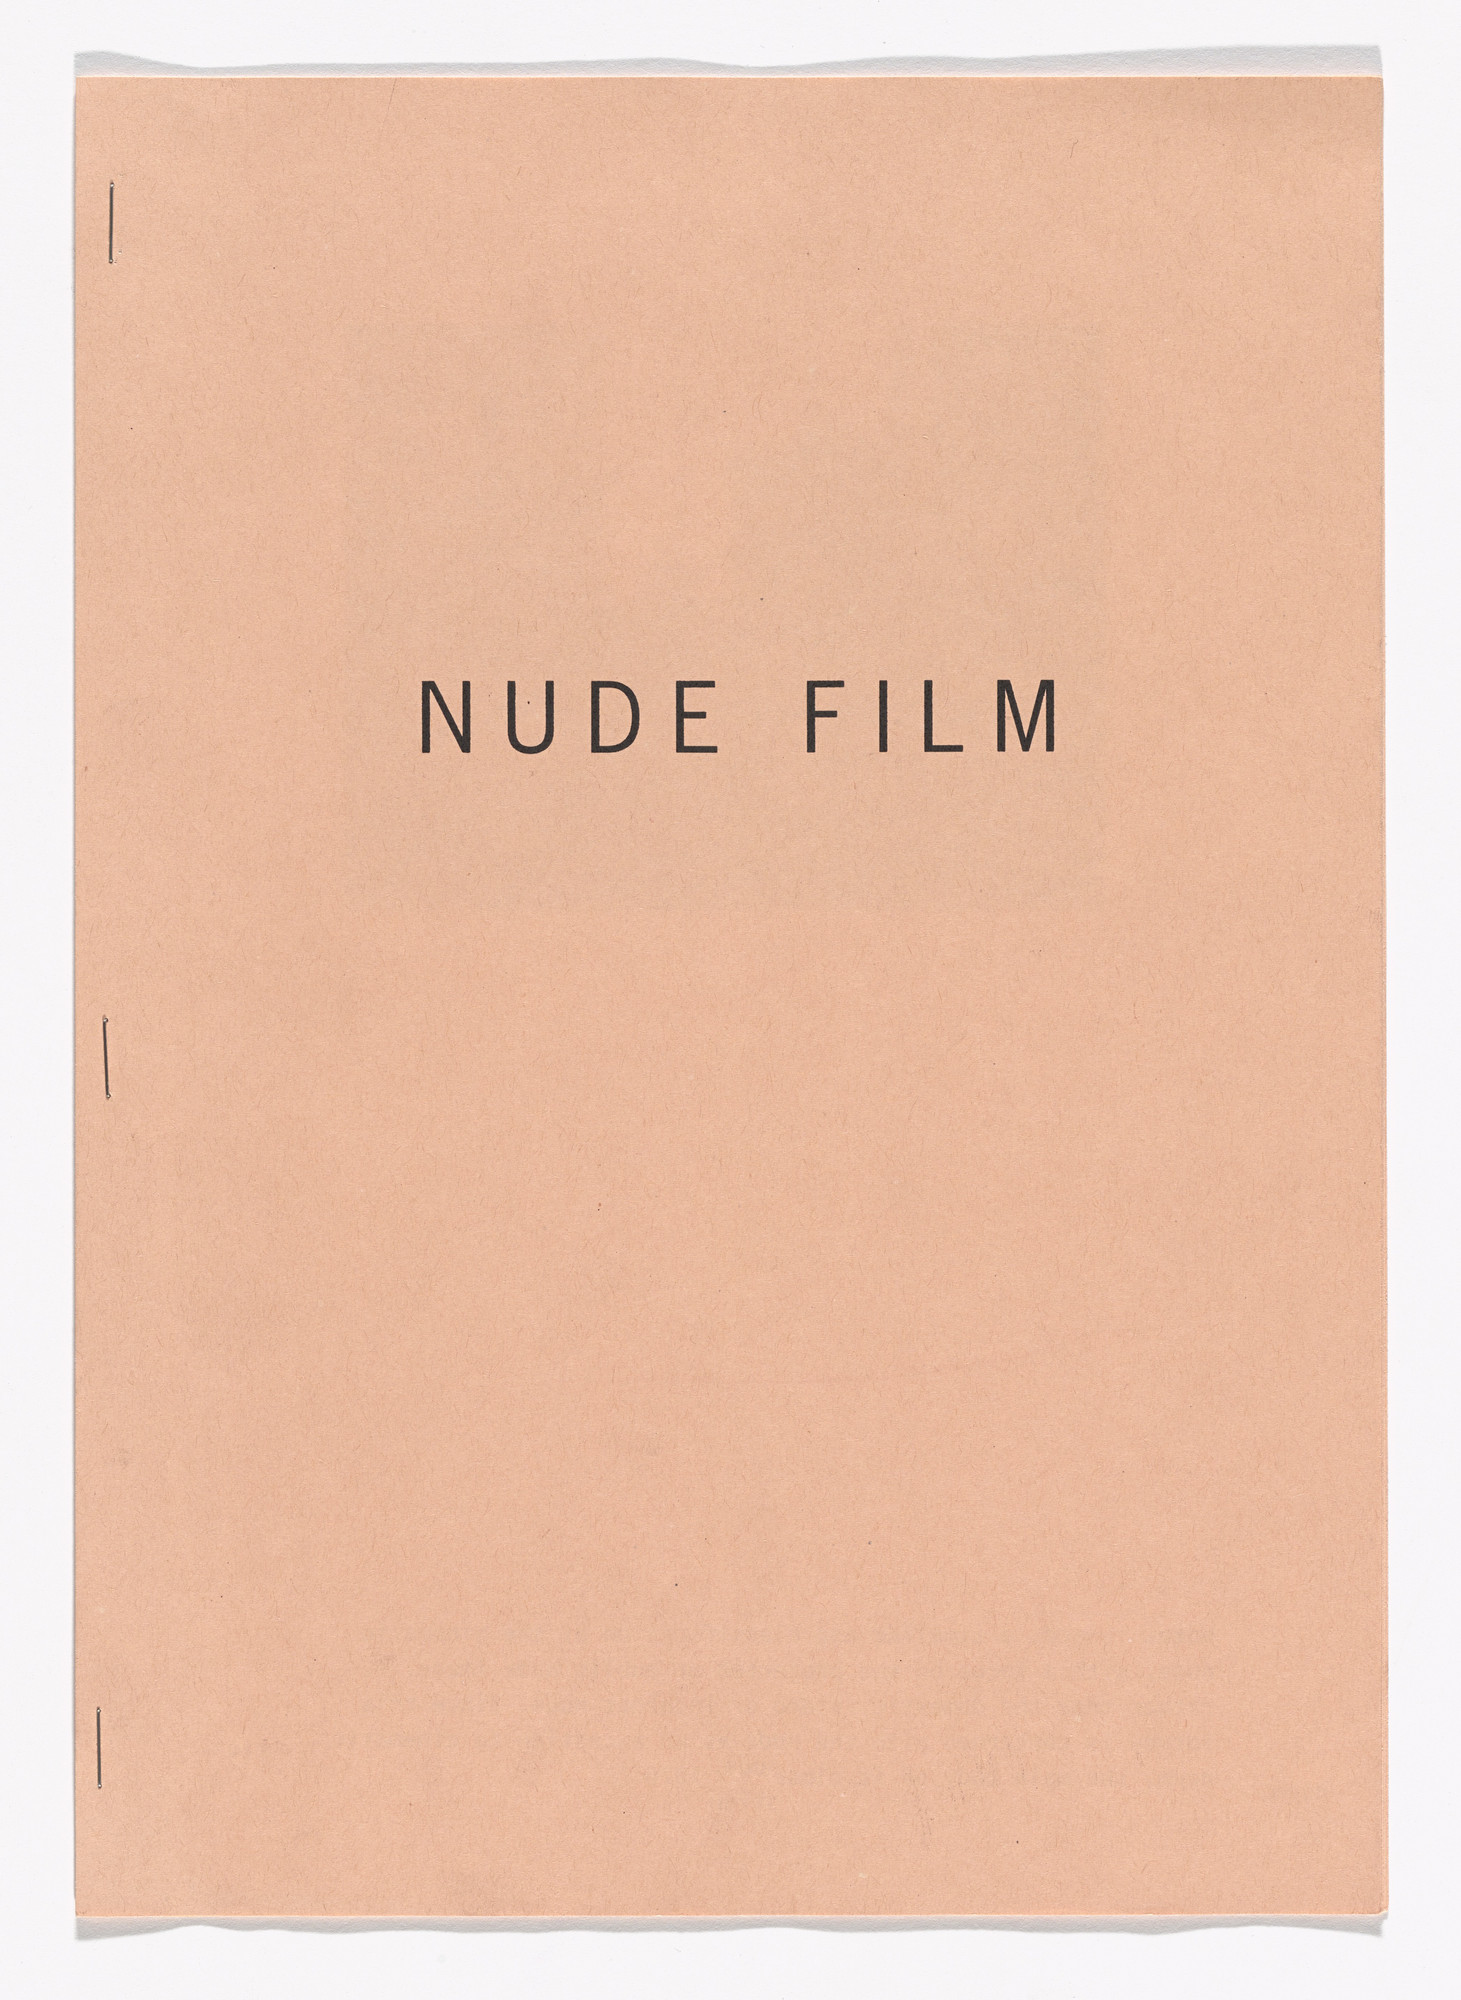 Fiona Banner. Nude Film. 2011